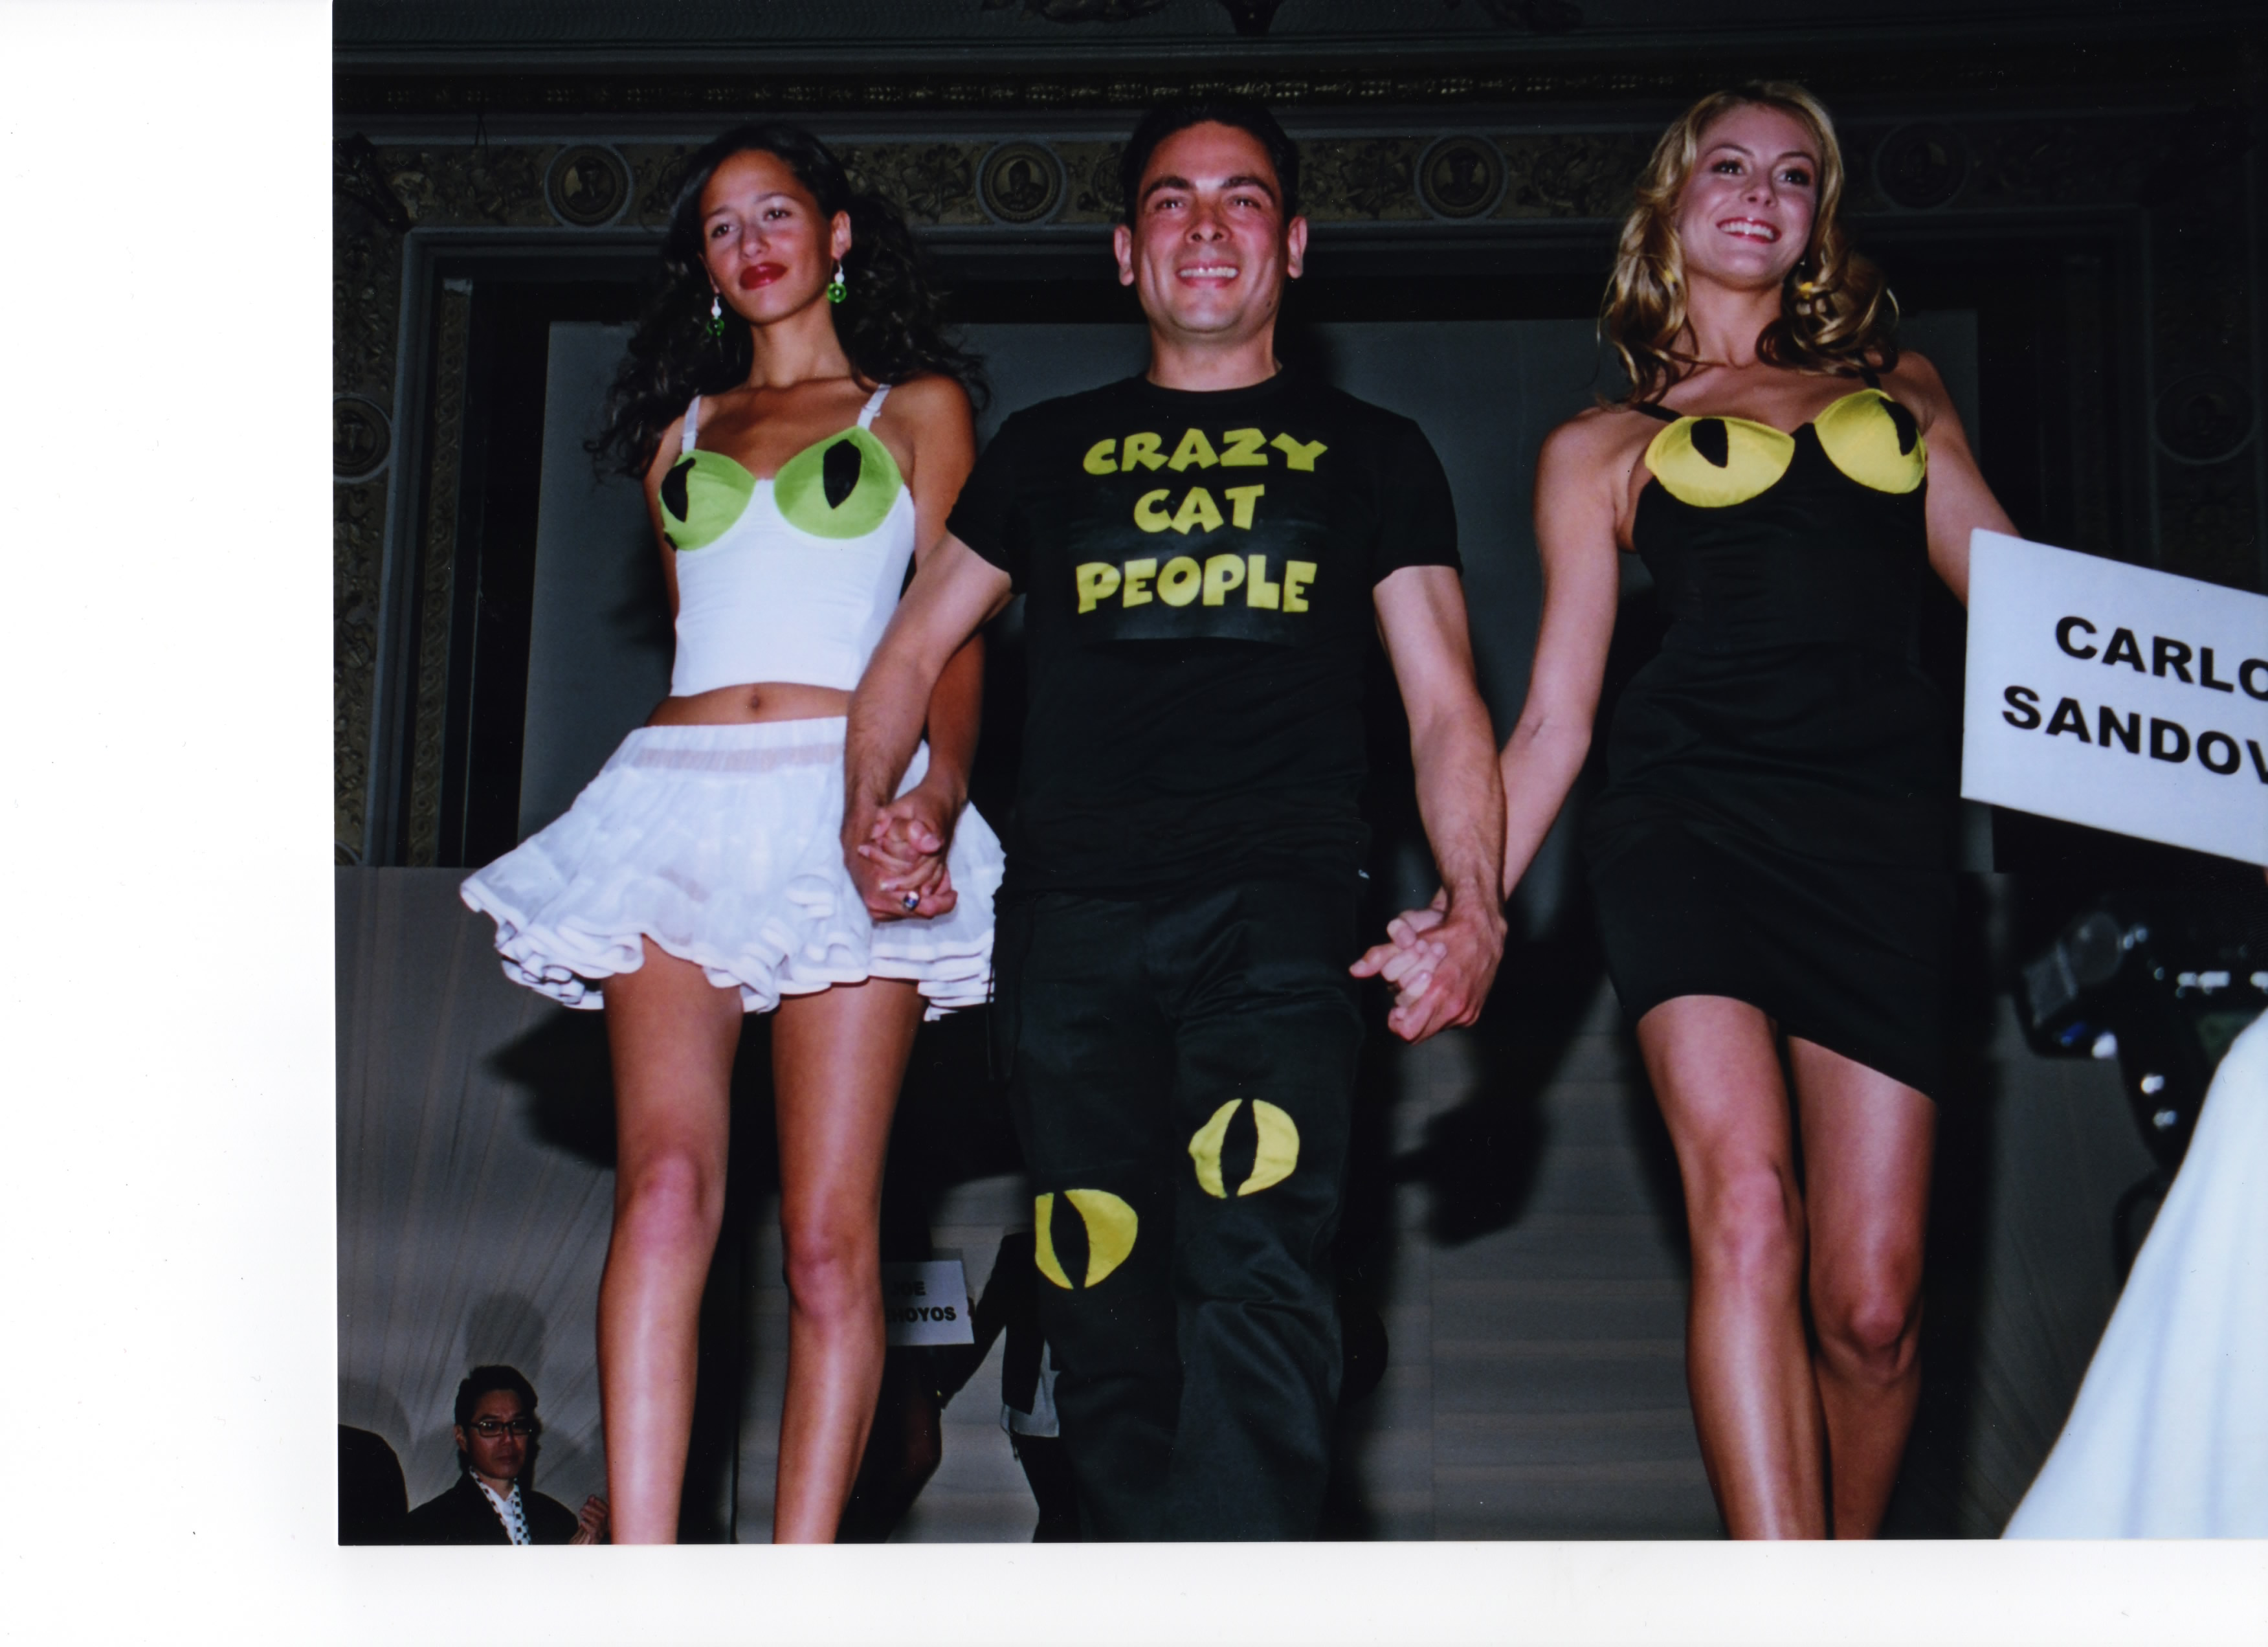 Illustrator Carlos Sandoval with two models wearing crazy cat people dresses